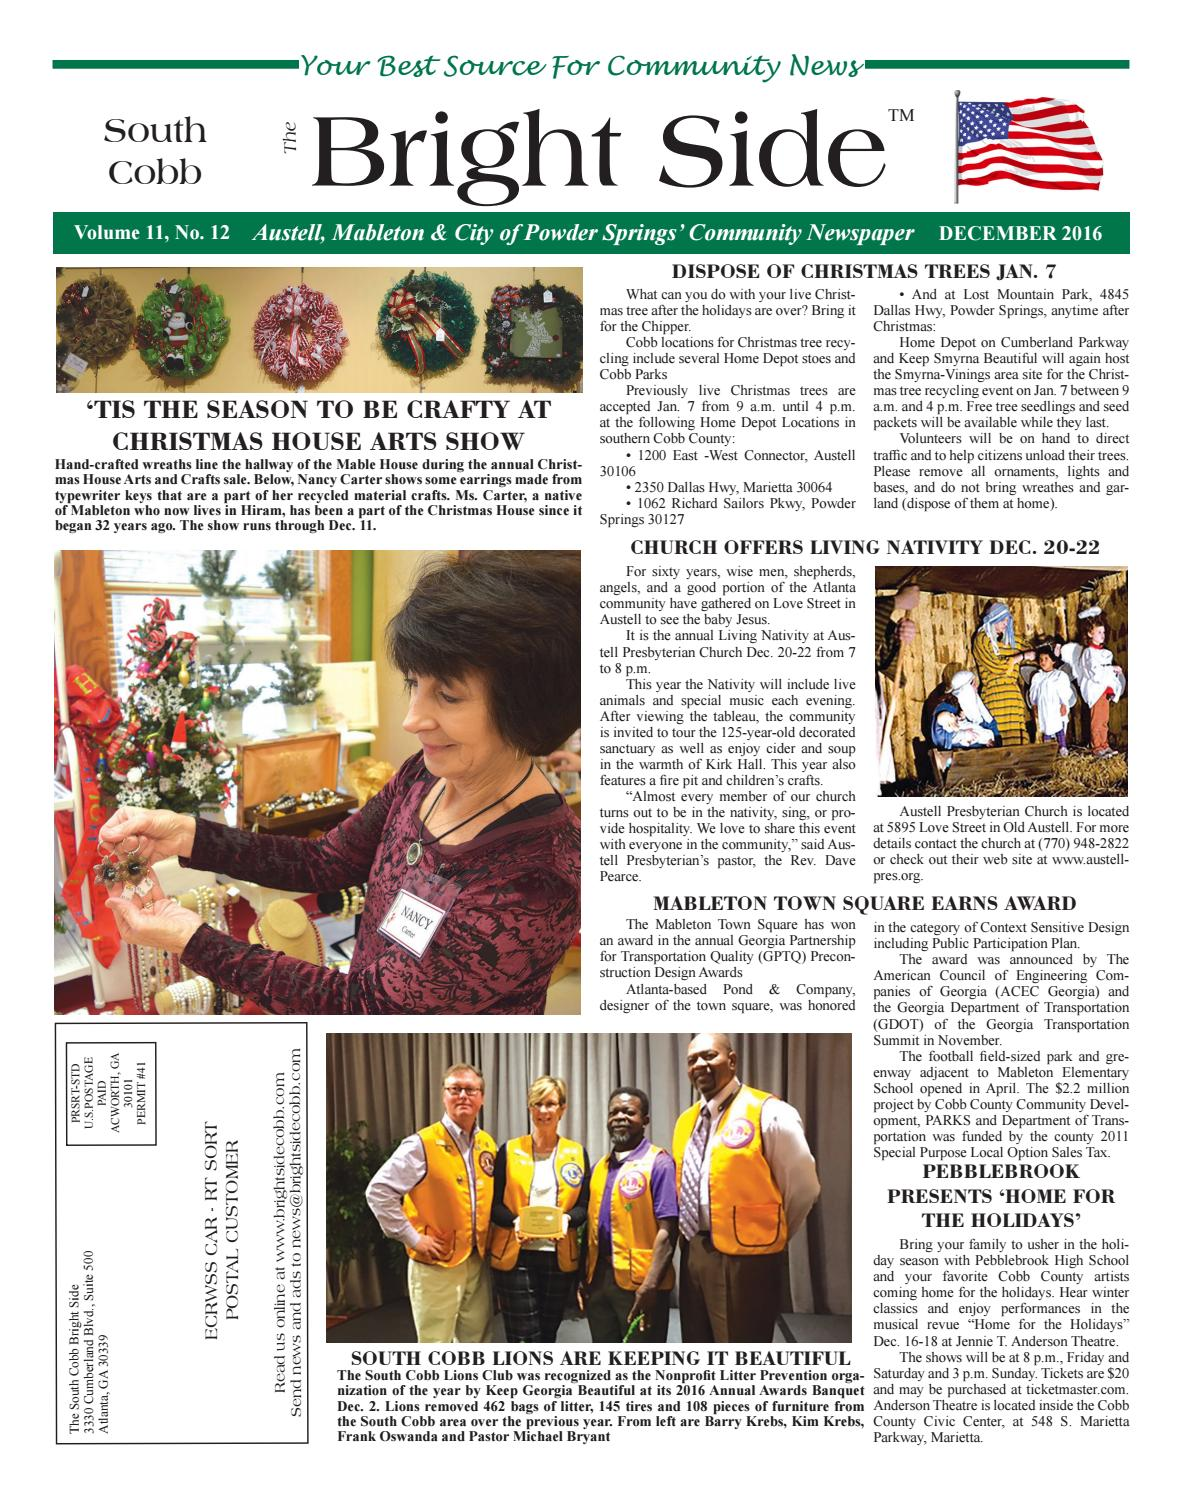 The bright side south cobb december 2016 by allan lipsett issuu 1betcityfo Images